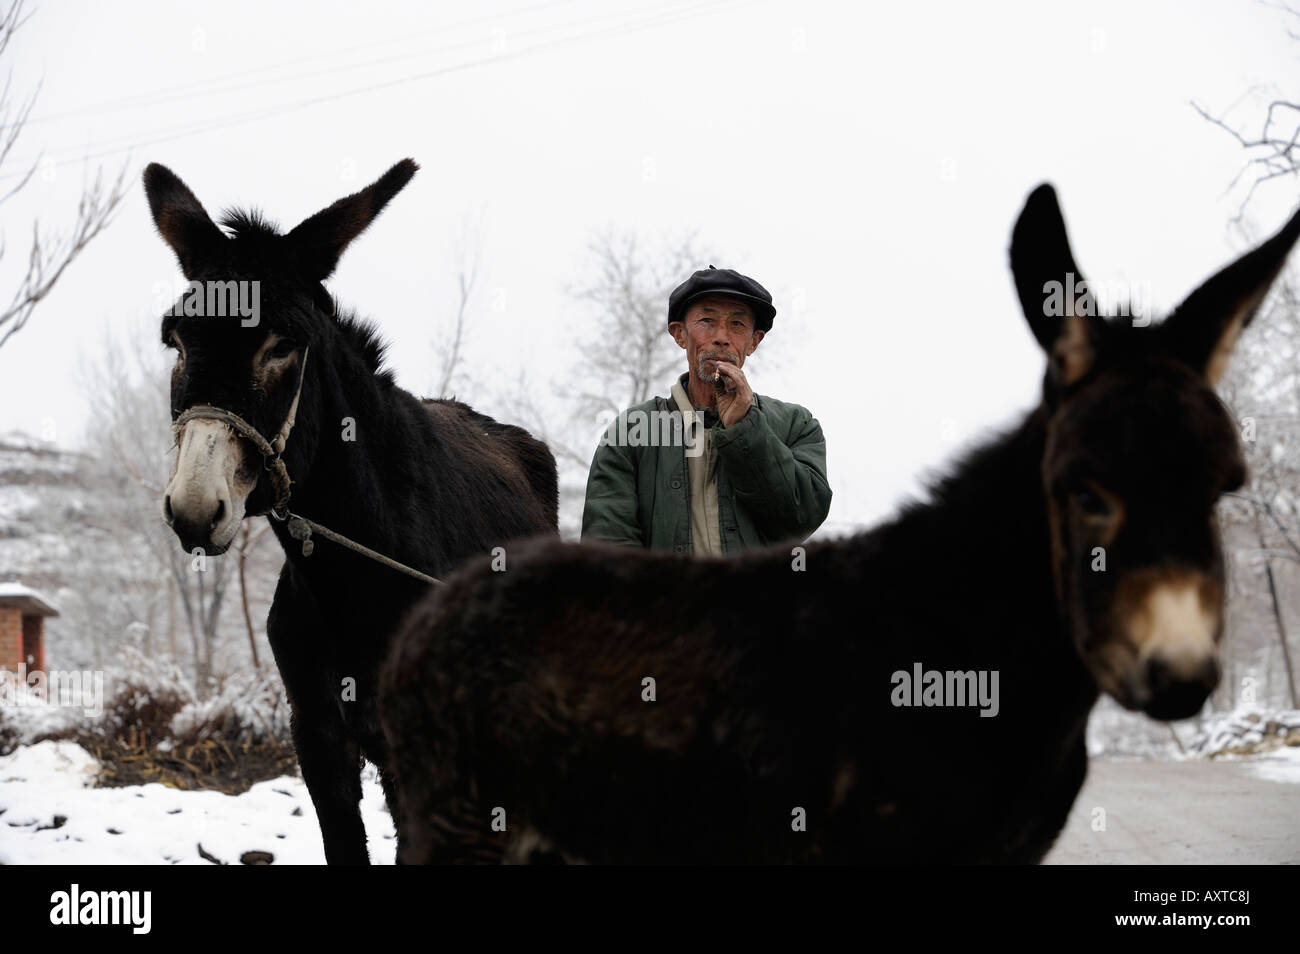 A farmer drives donkey in Chicheng county, Hebei province, China. 28-Mar-2008 - Stock Image